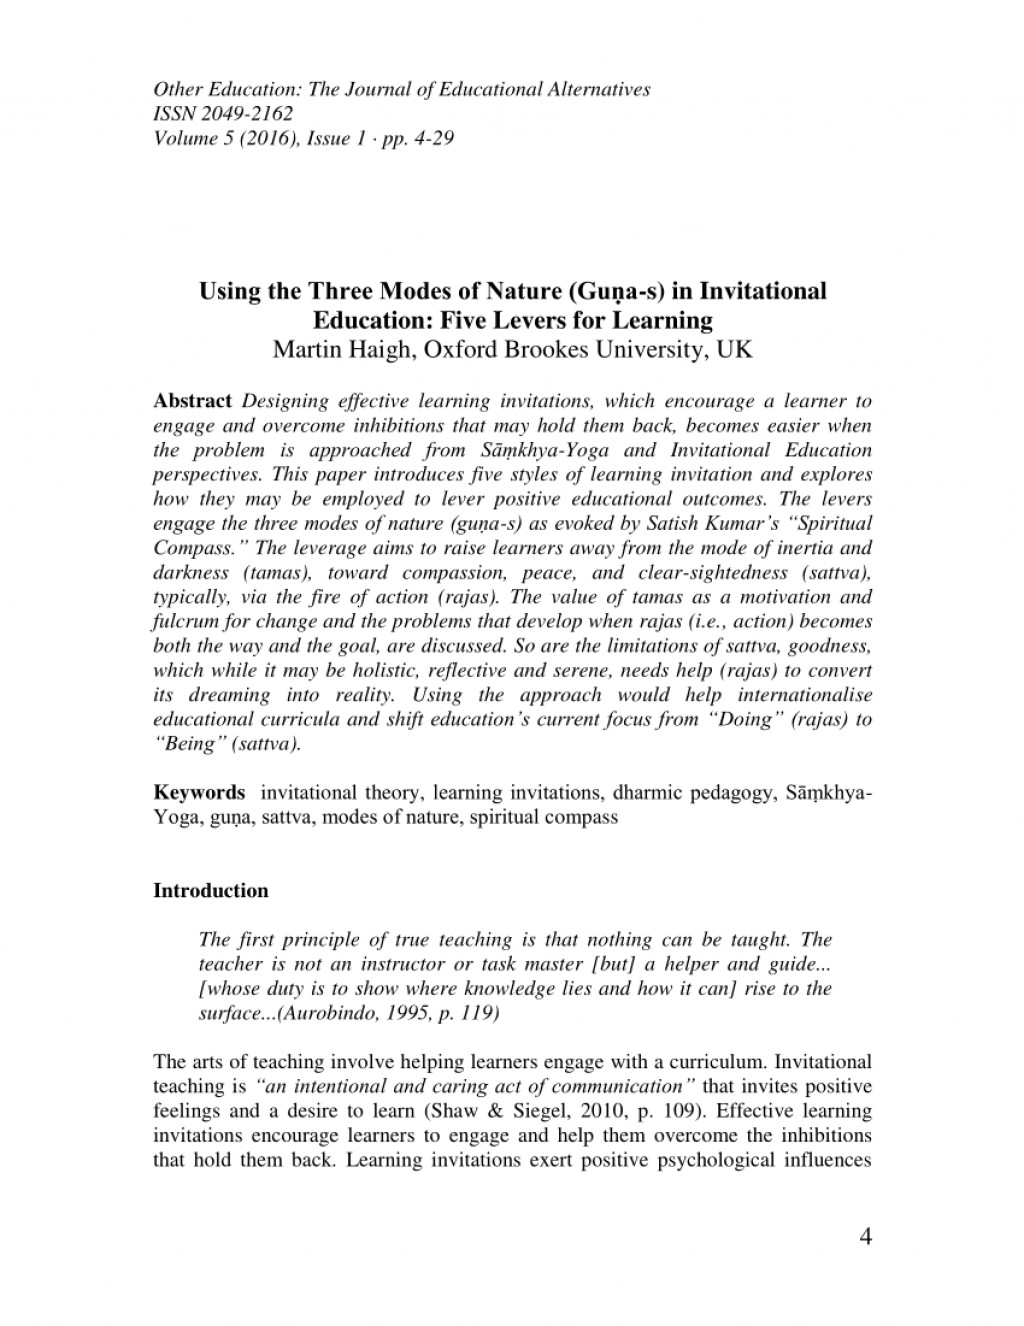 004 Global Teacher Essay Largepreview Shocking On Becoming A Large